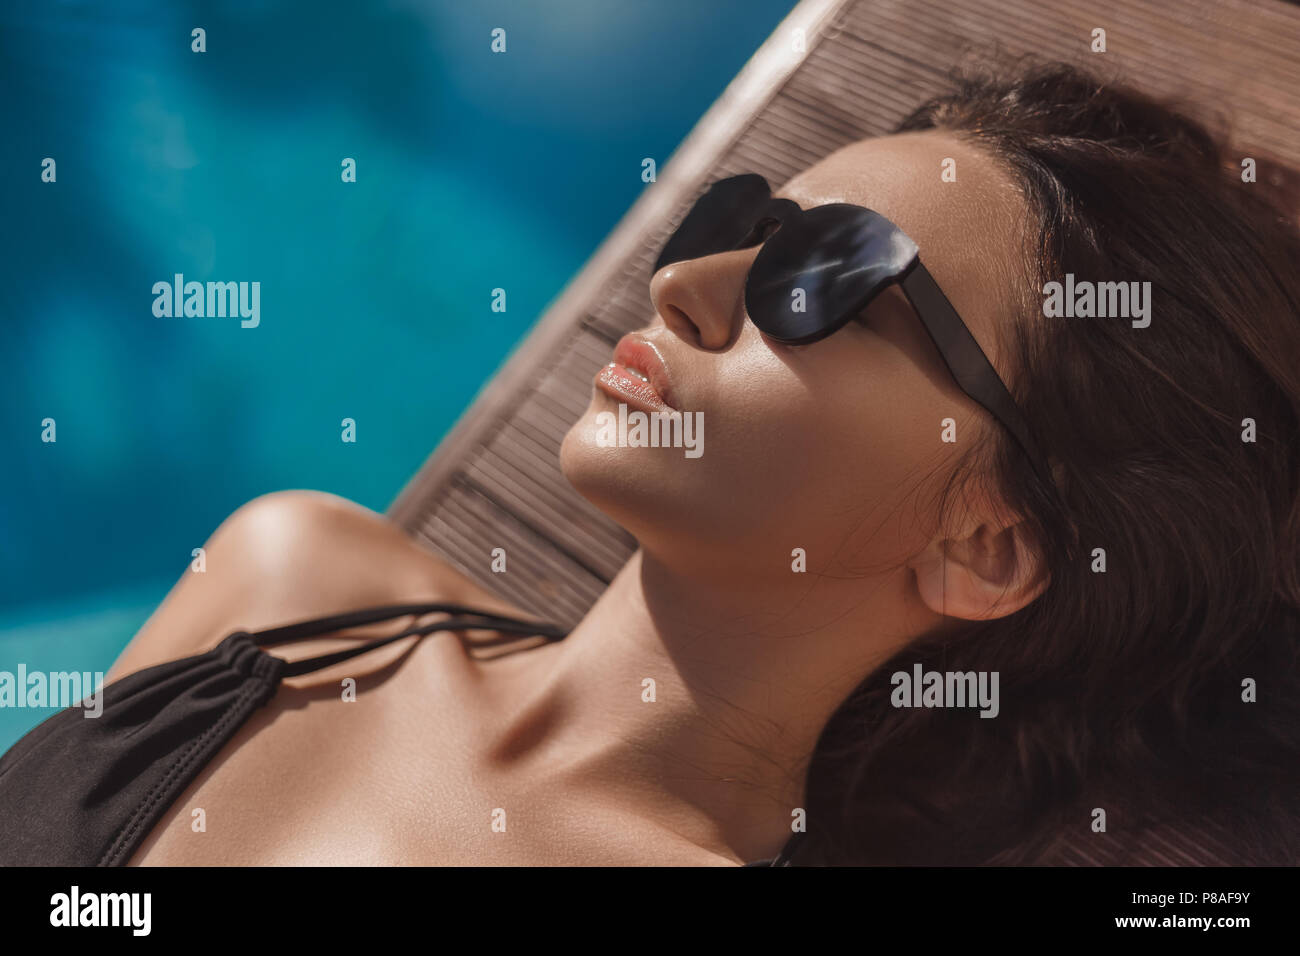 close-up portrait of young woman in black bikini lying at poolside - Stock Image